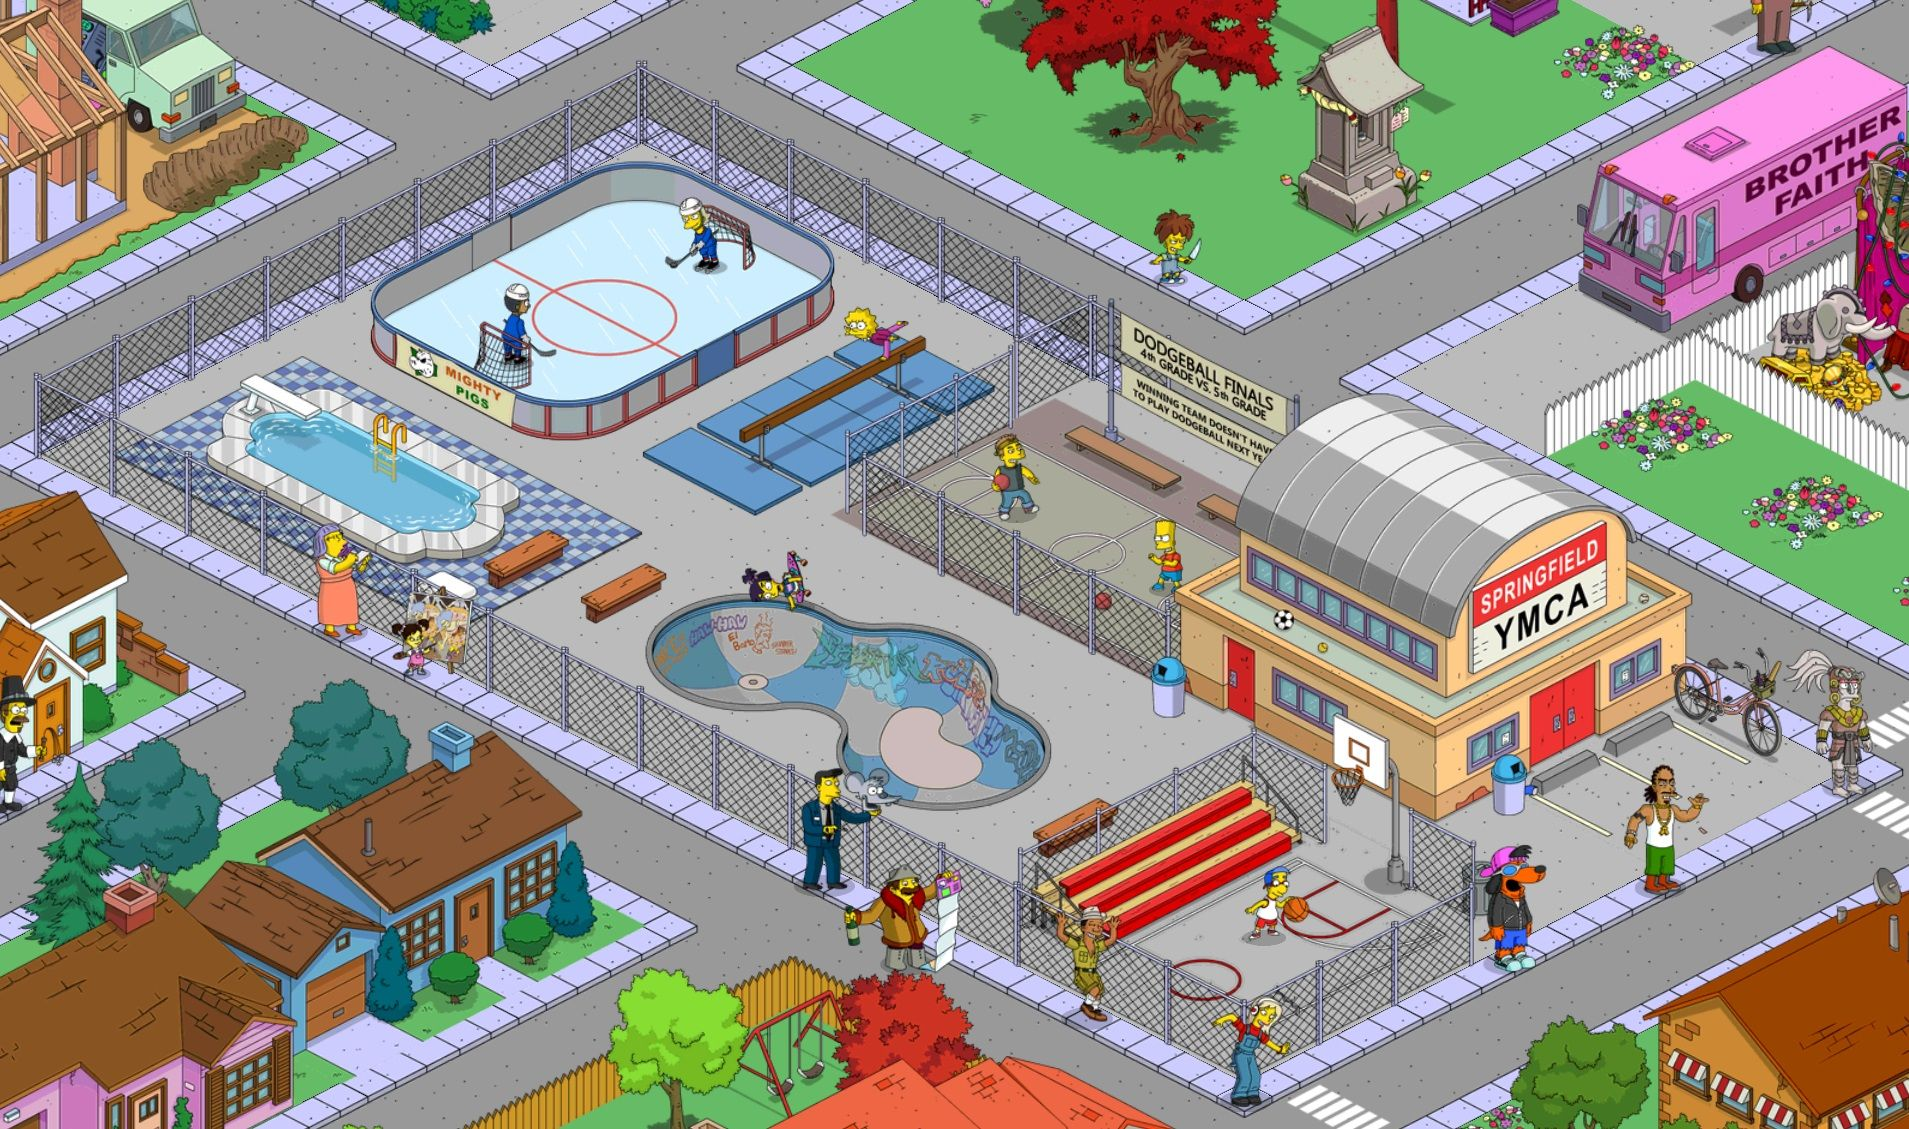 Tapped Out Halloween Event 2020 Cool Down 300+ Best Tapped Out ideas in 2020 | the simpsons, the simpsons